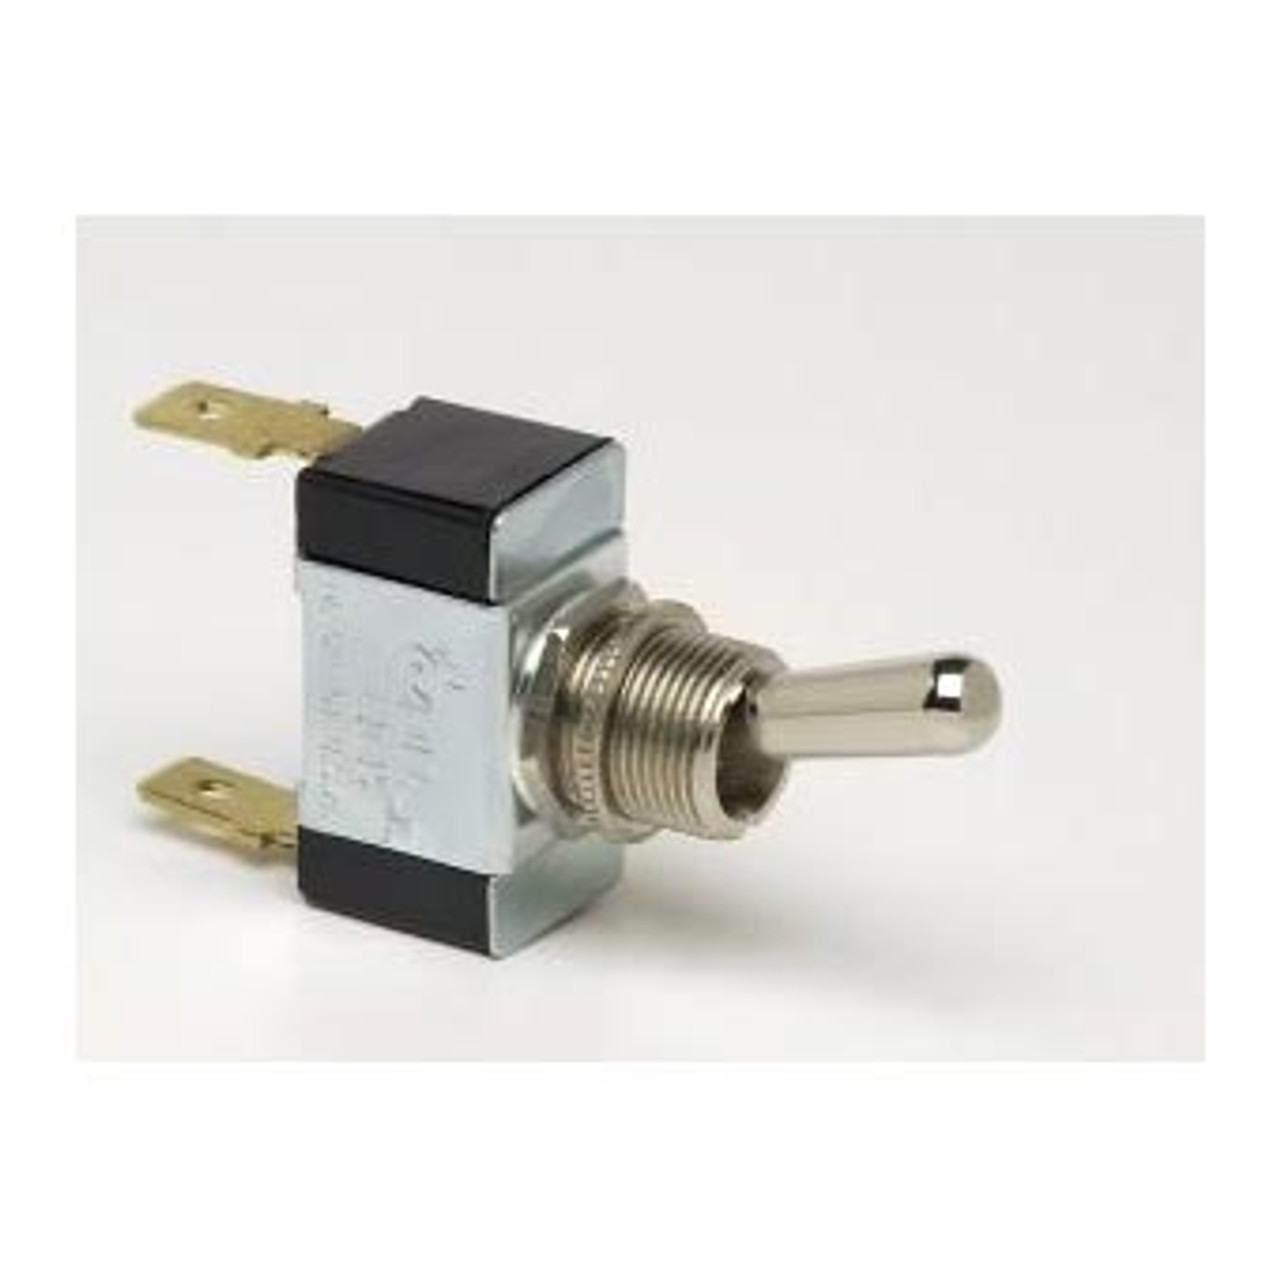 TOGGLE SWIT OFF(ON) 2 B/T SPST 2 BLADE TERMINALS